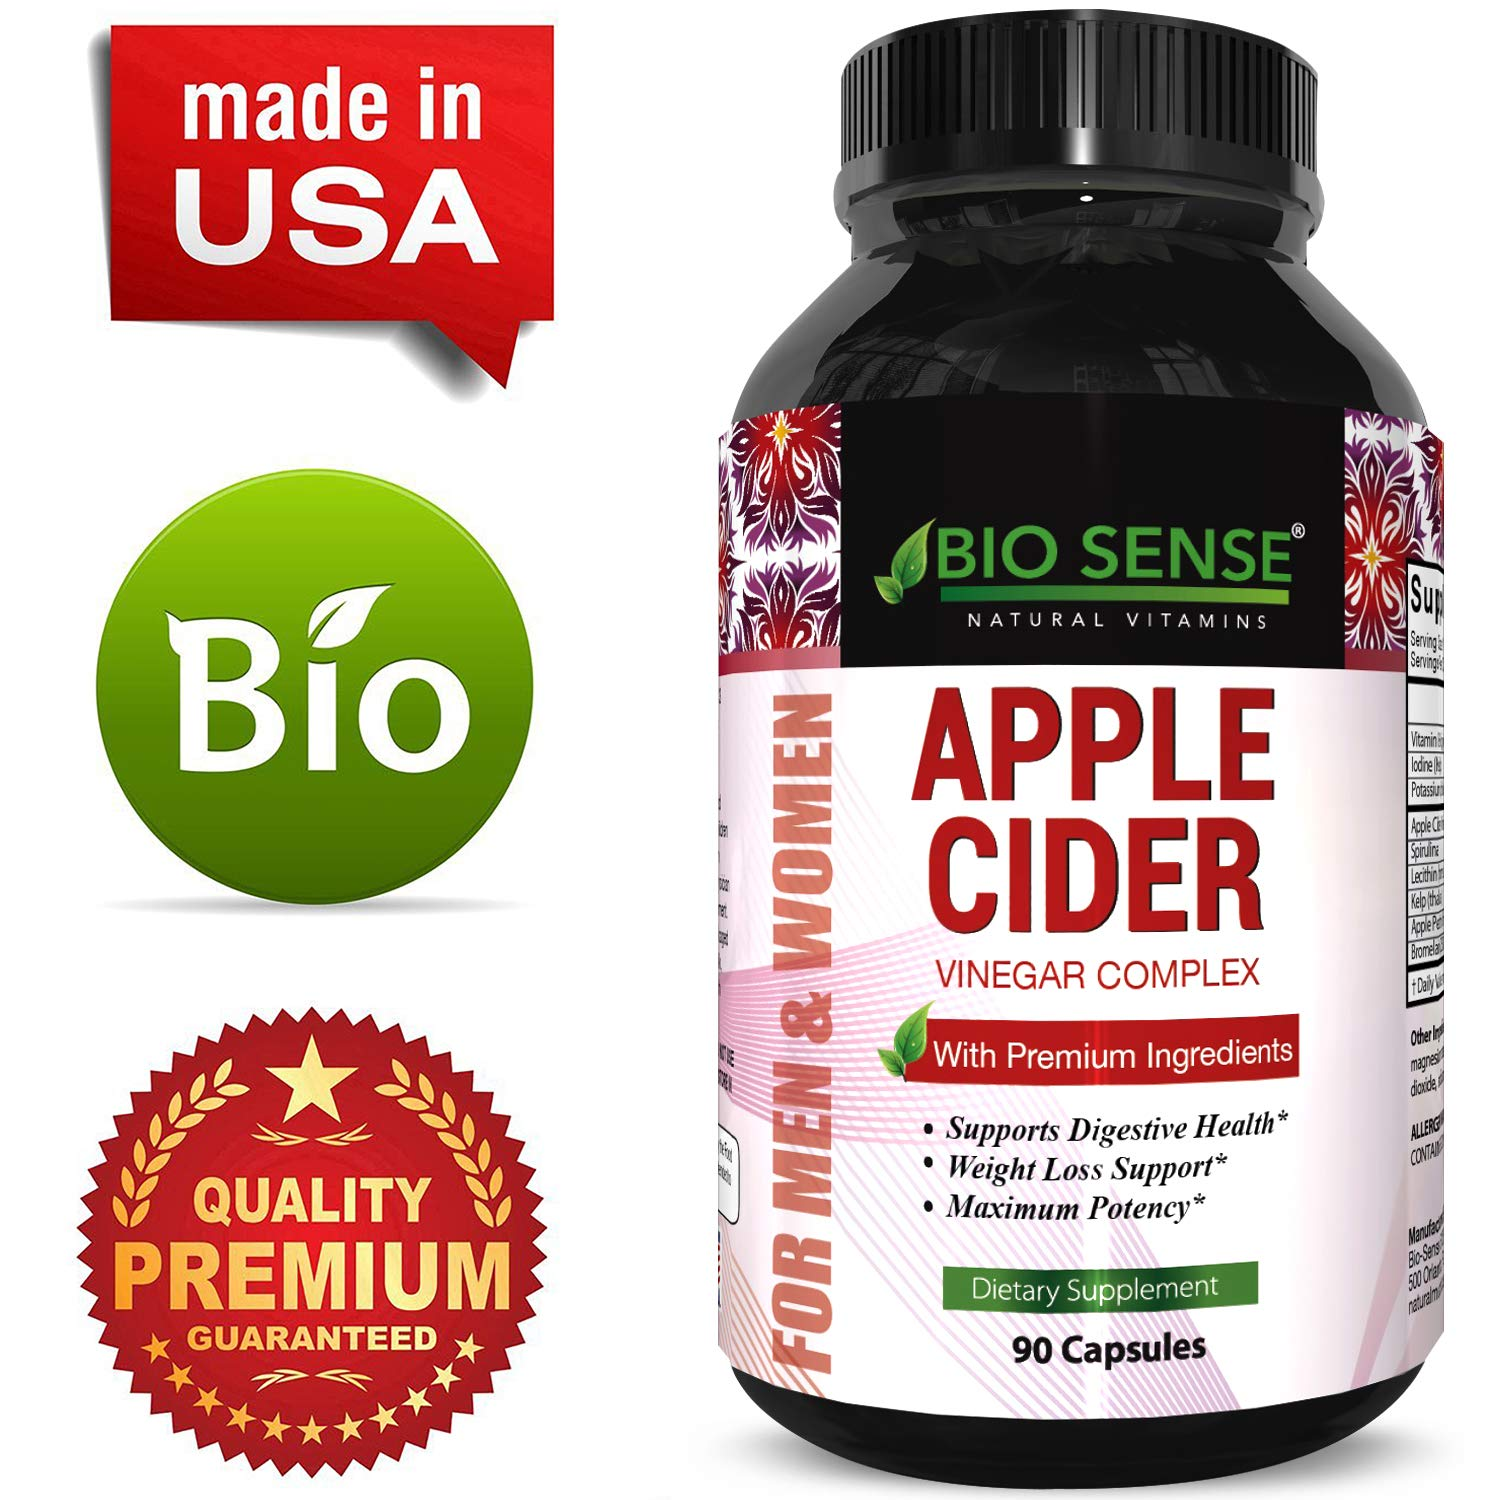 Apple Cider Vinegar Weight Loss Supplement Natural Detox Fat Burner Diet Pills Digestion Support Fast Acting Metabolism Booster Best Appetite Suppressant for Men and Women 90 Capsules by Bio Sense